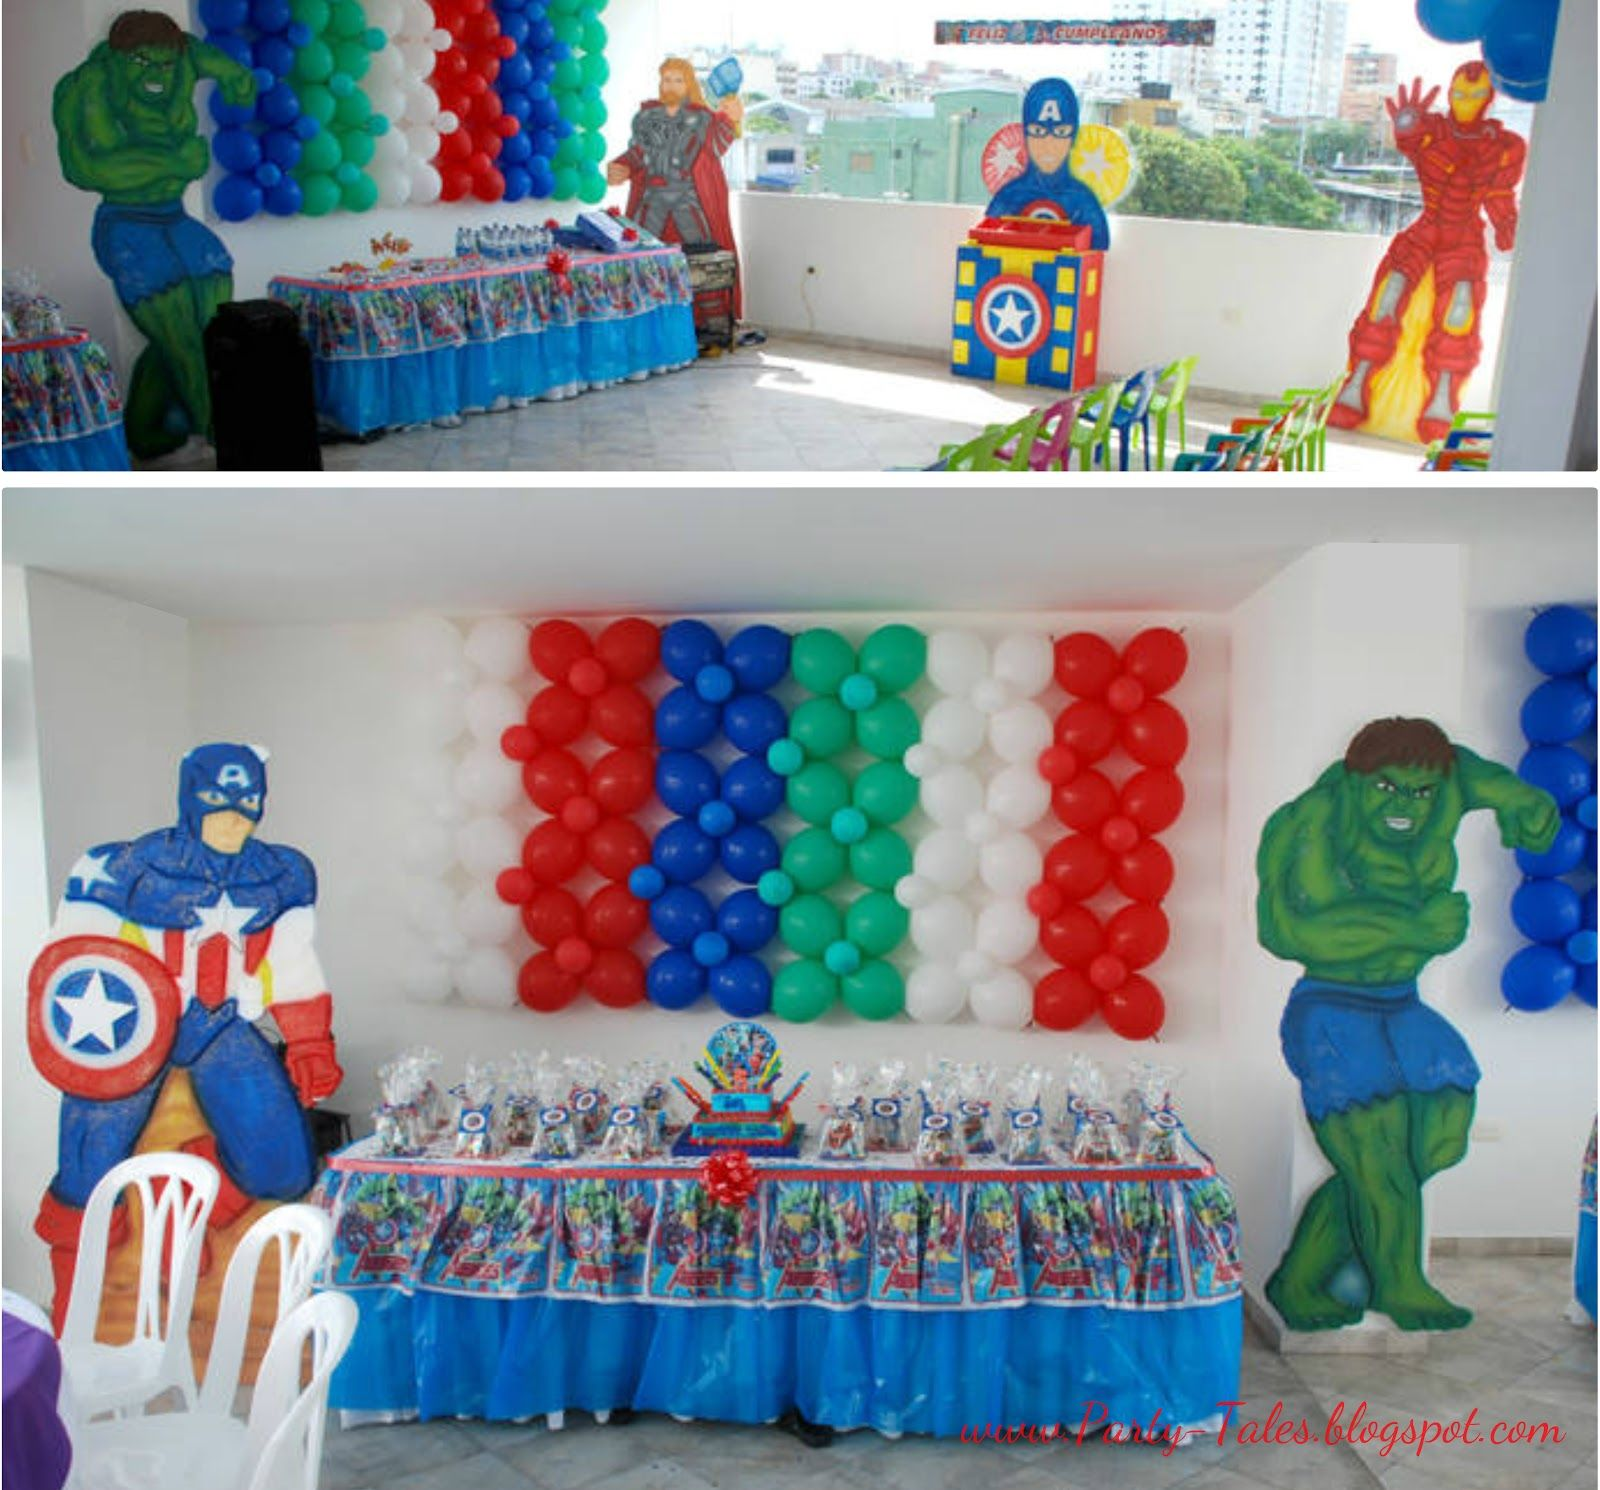 Avengers Party Decorations Party Tales Birthday Party The Avengers Superhero Party